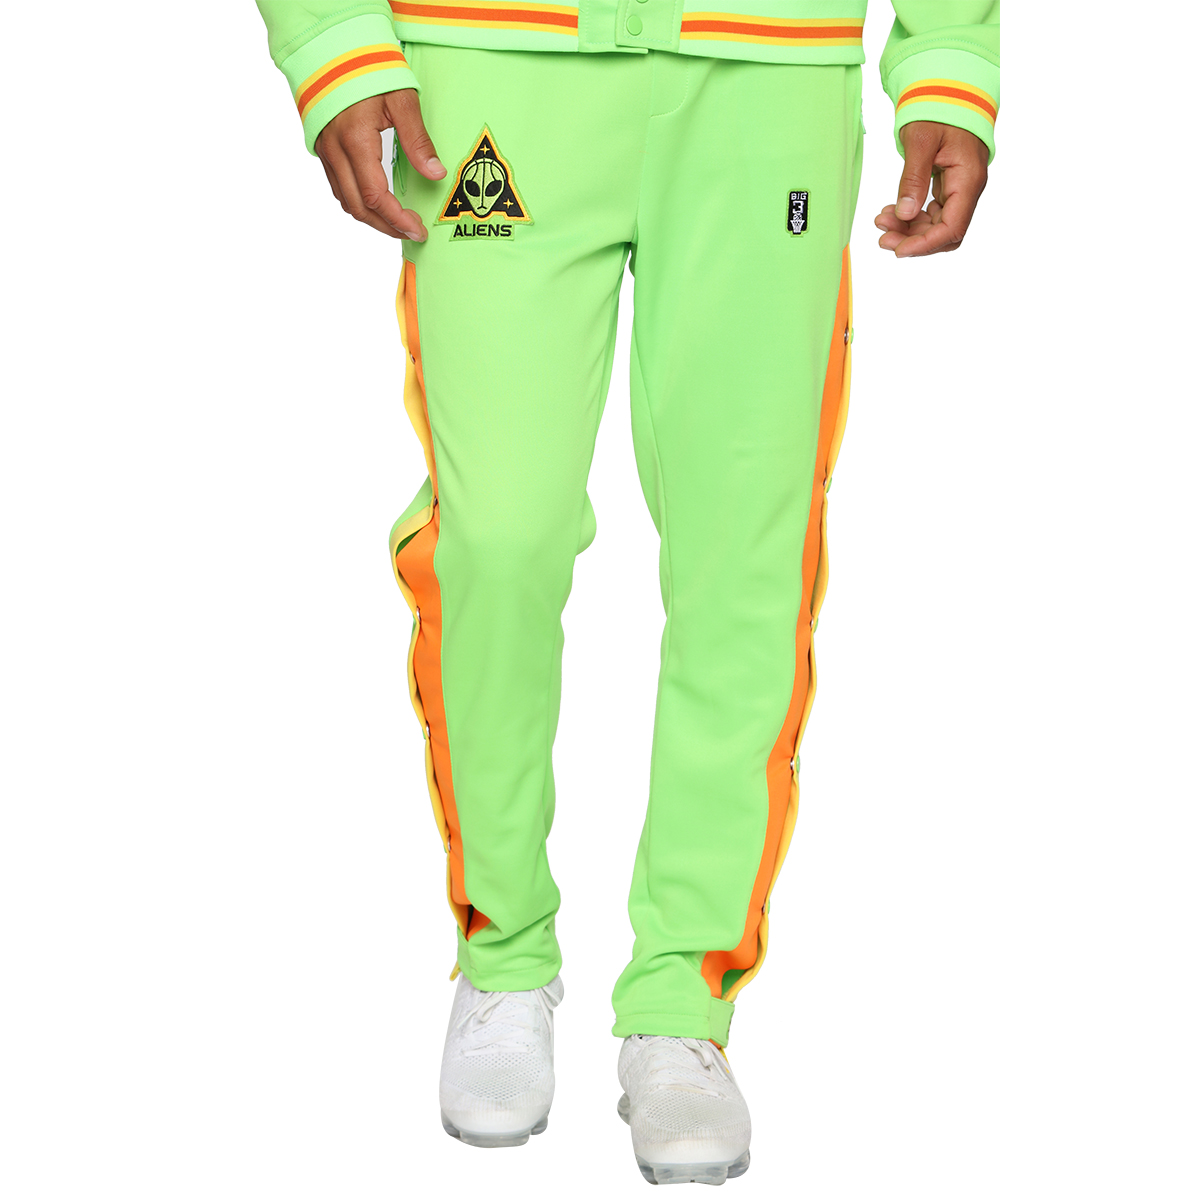 Team Aliens Joggers - Green/Combo